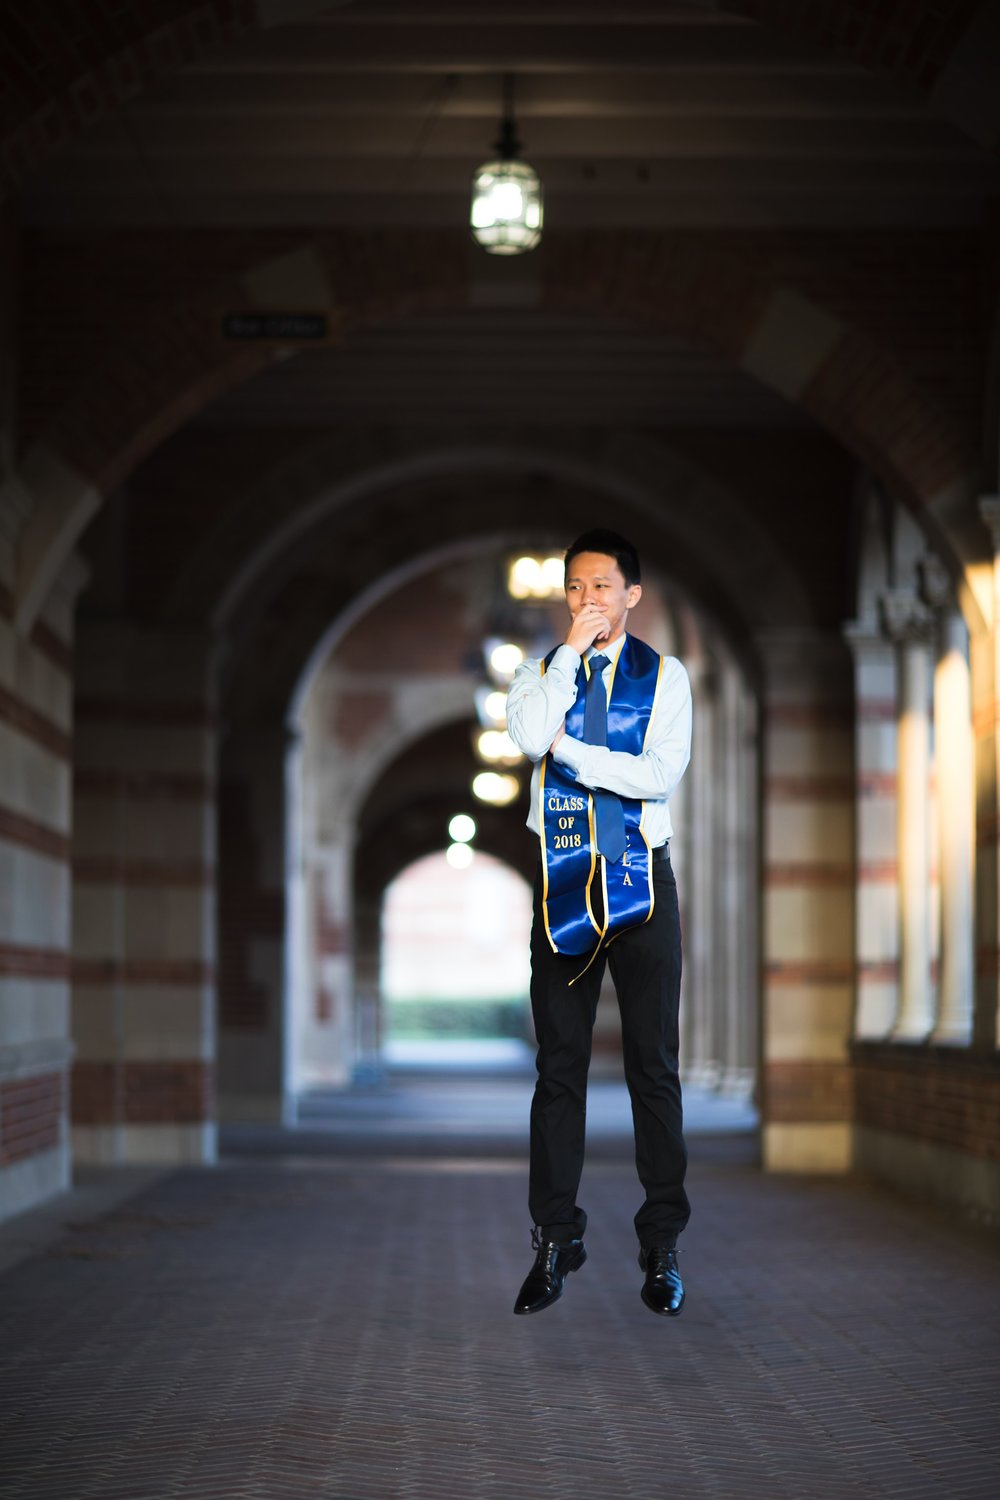 los-angeles-ucla-senior-graduation-portraits-royce-hall-arches-jumping